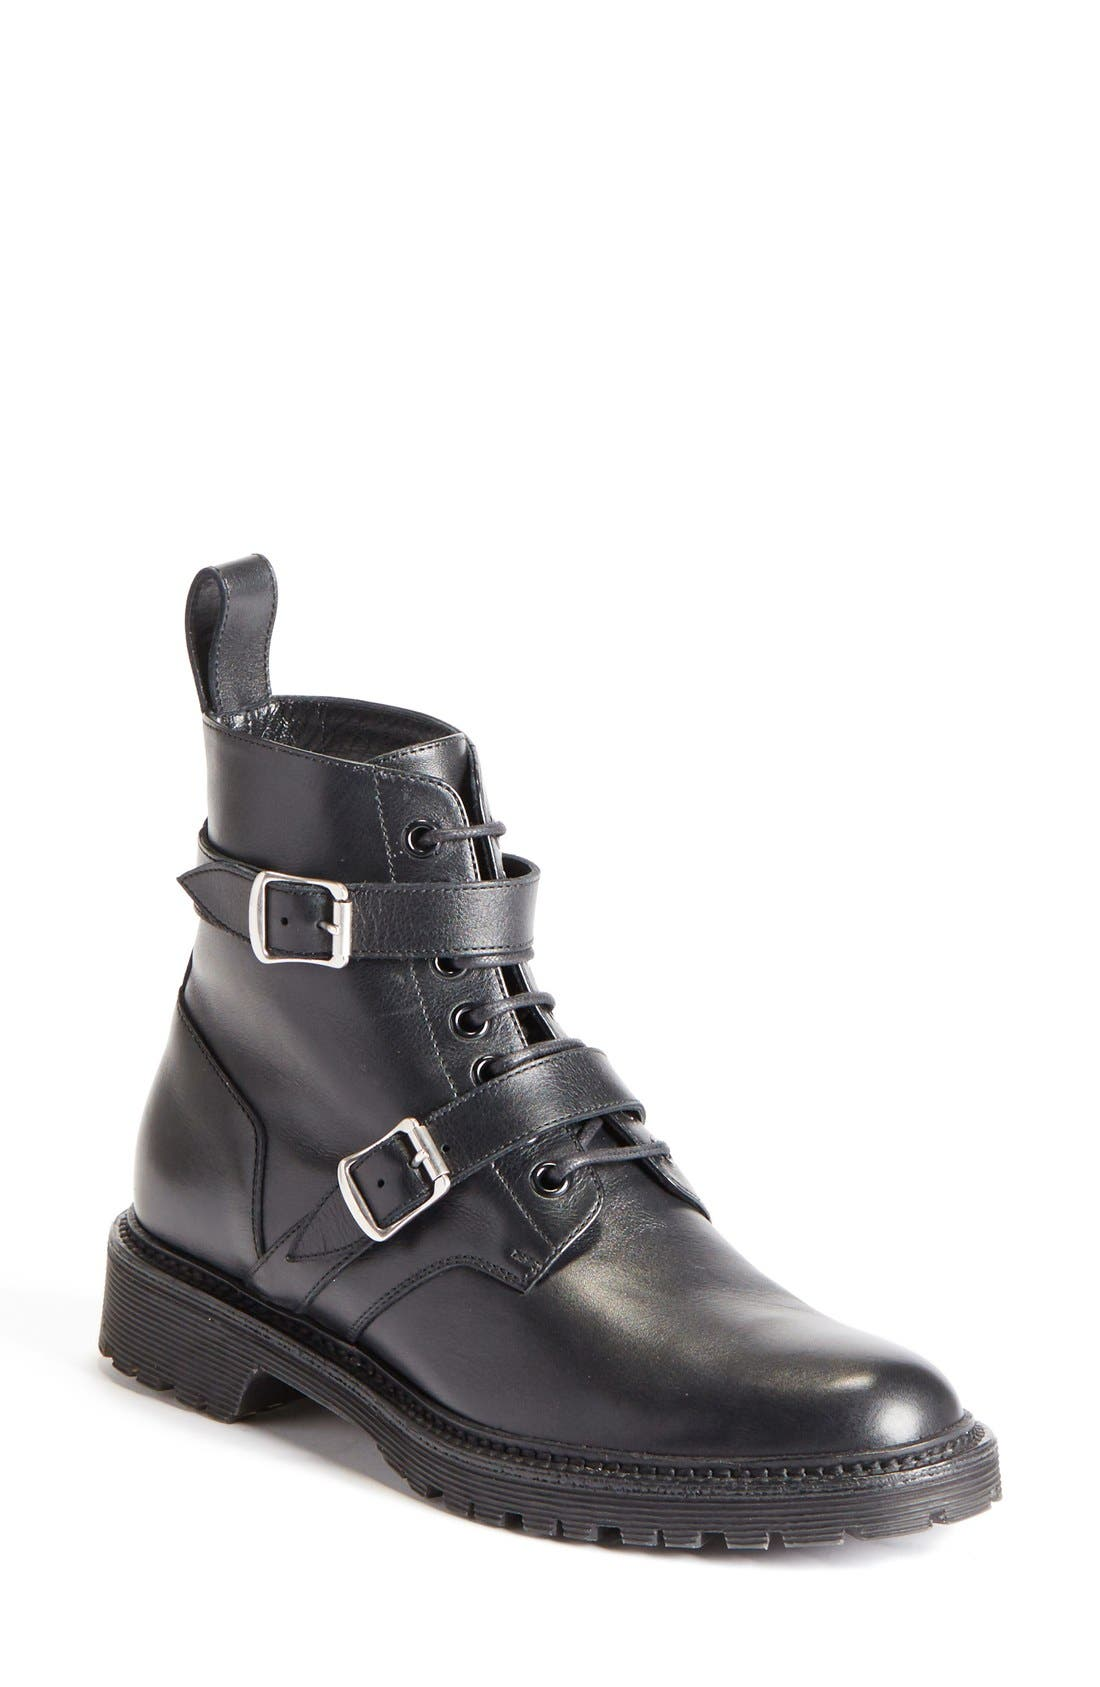 Main Image - Saint Laurent 'Army' Military Bootie (Women)